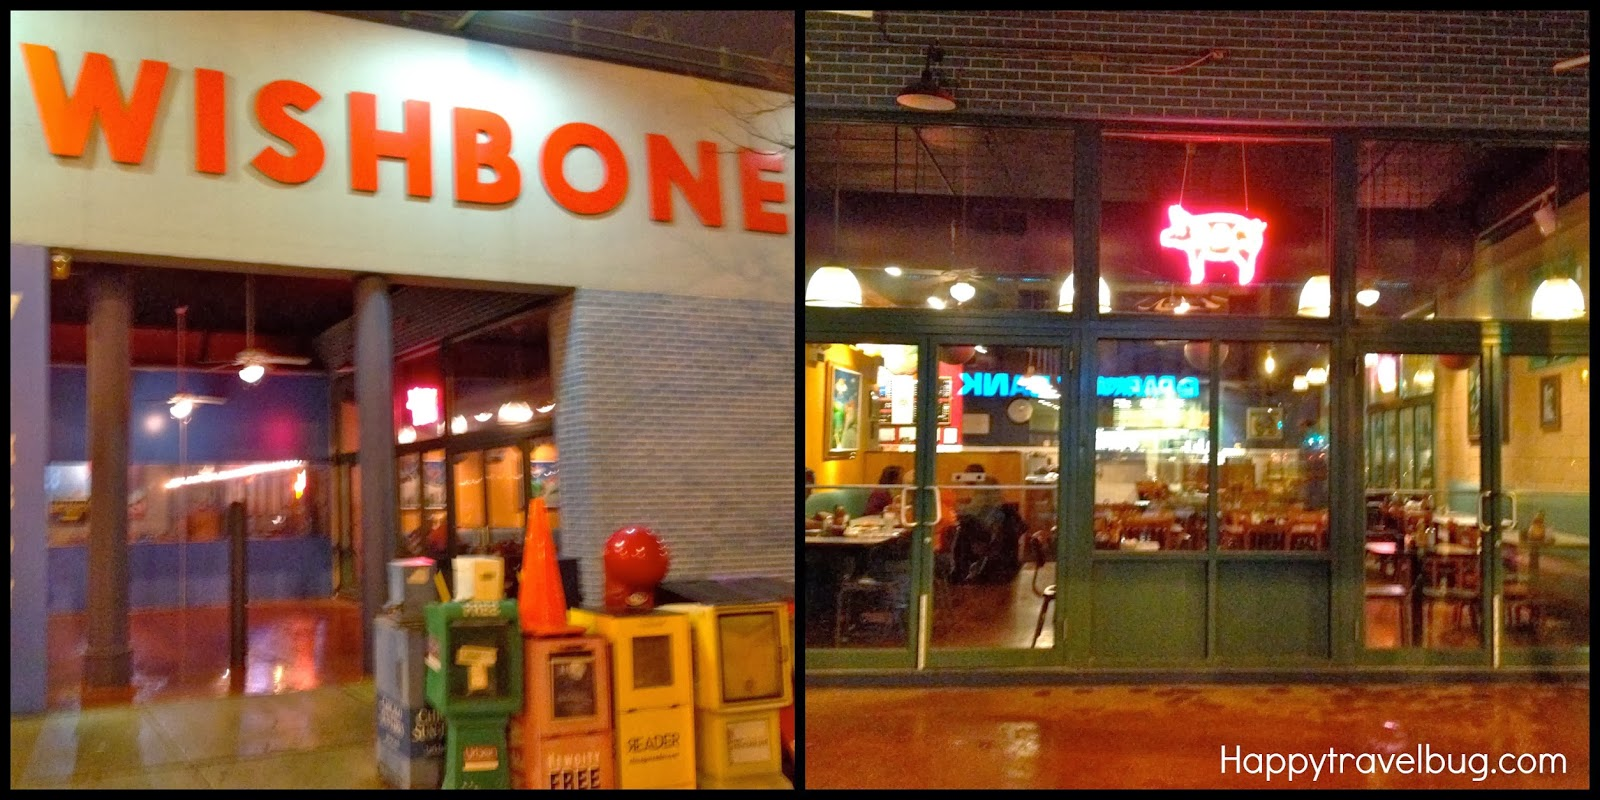 Wishbone restaurant in Chicago